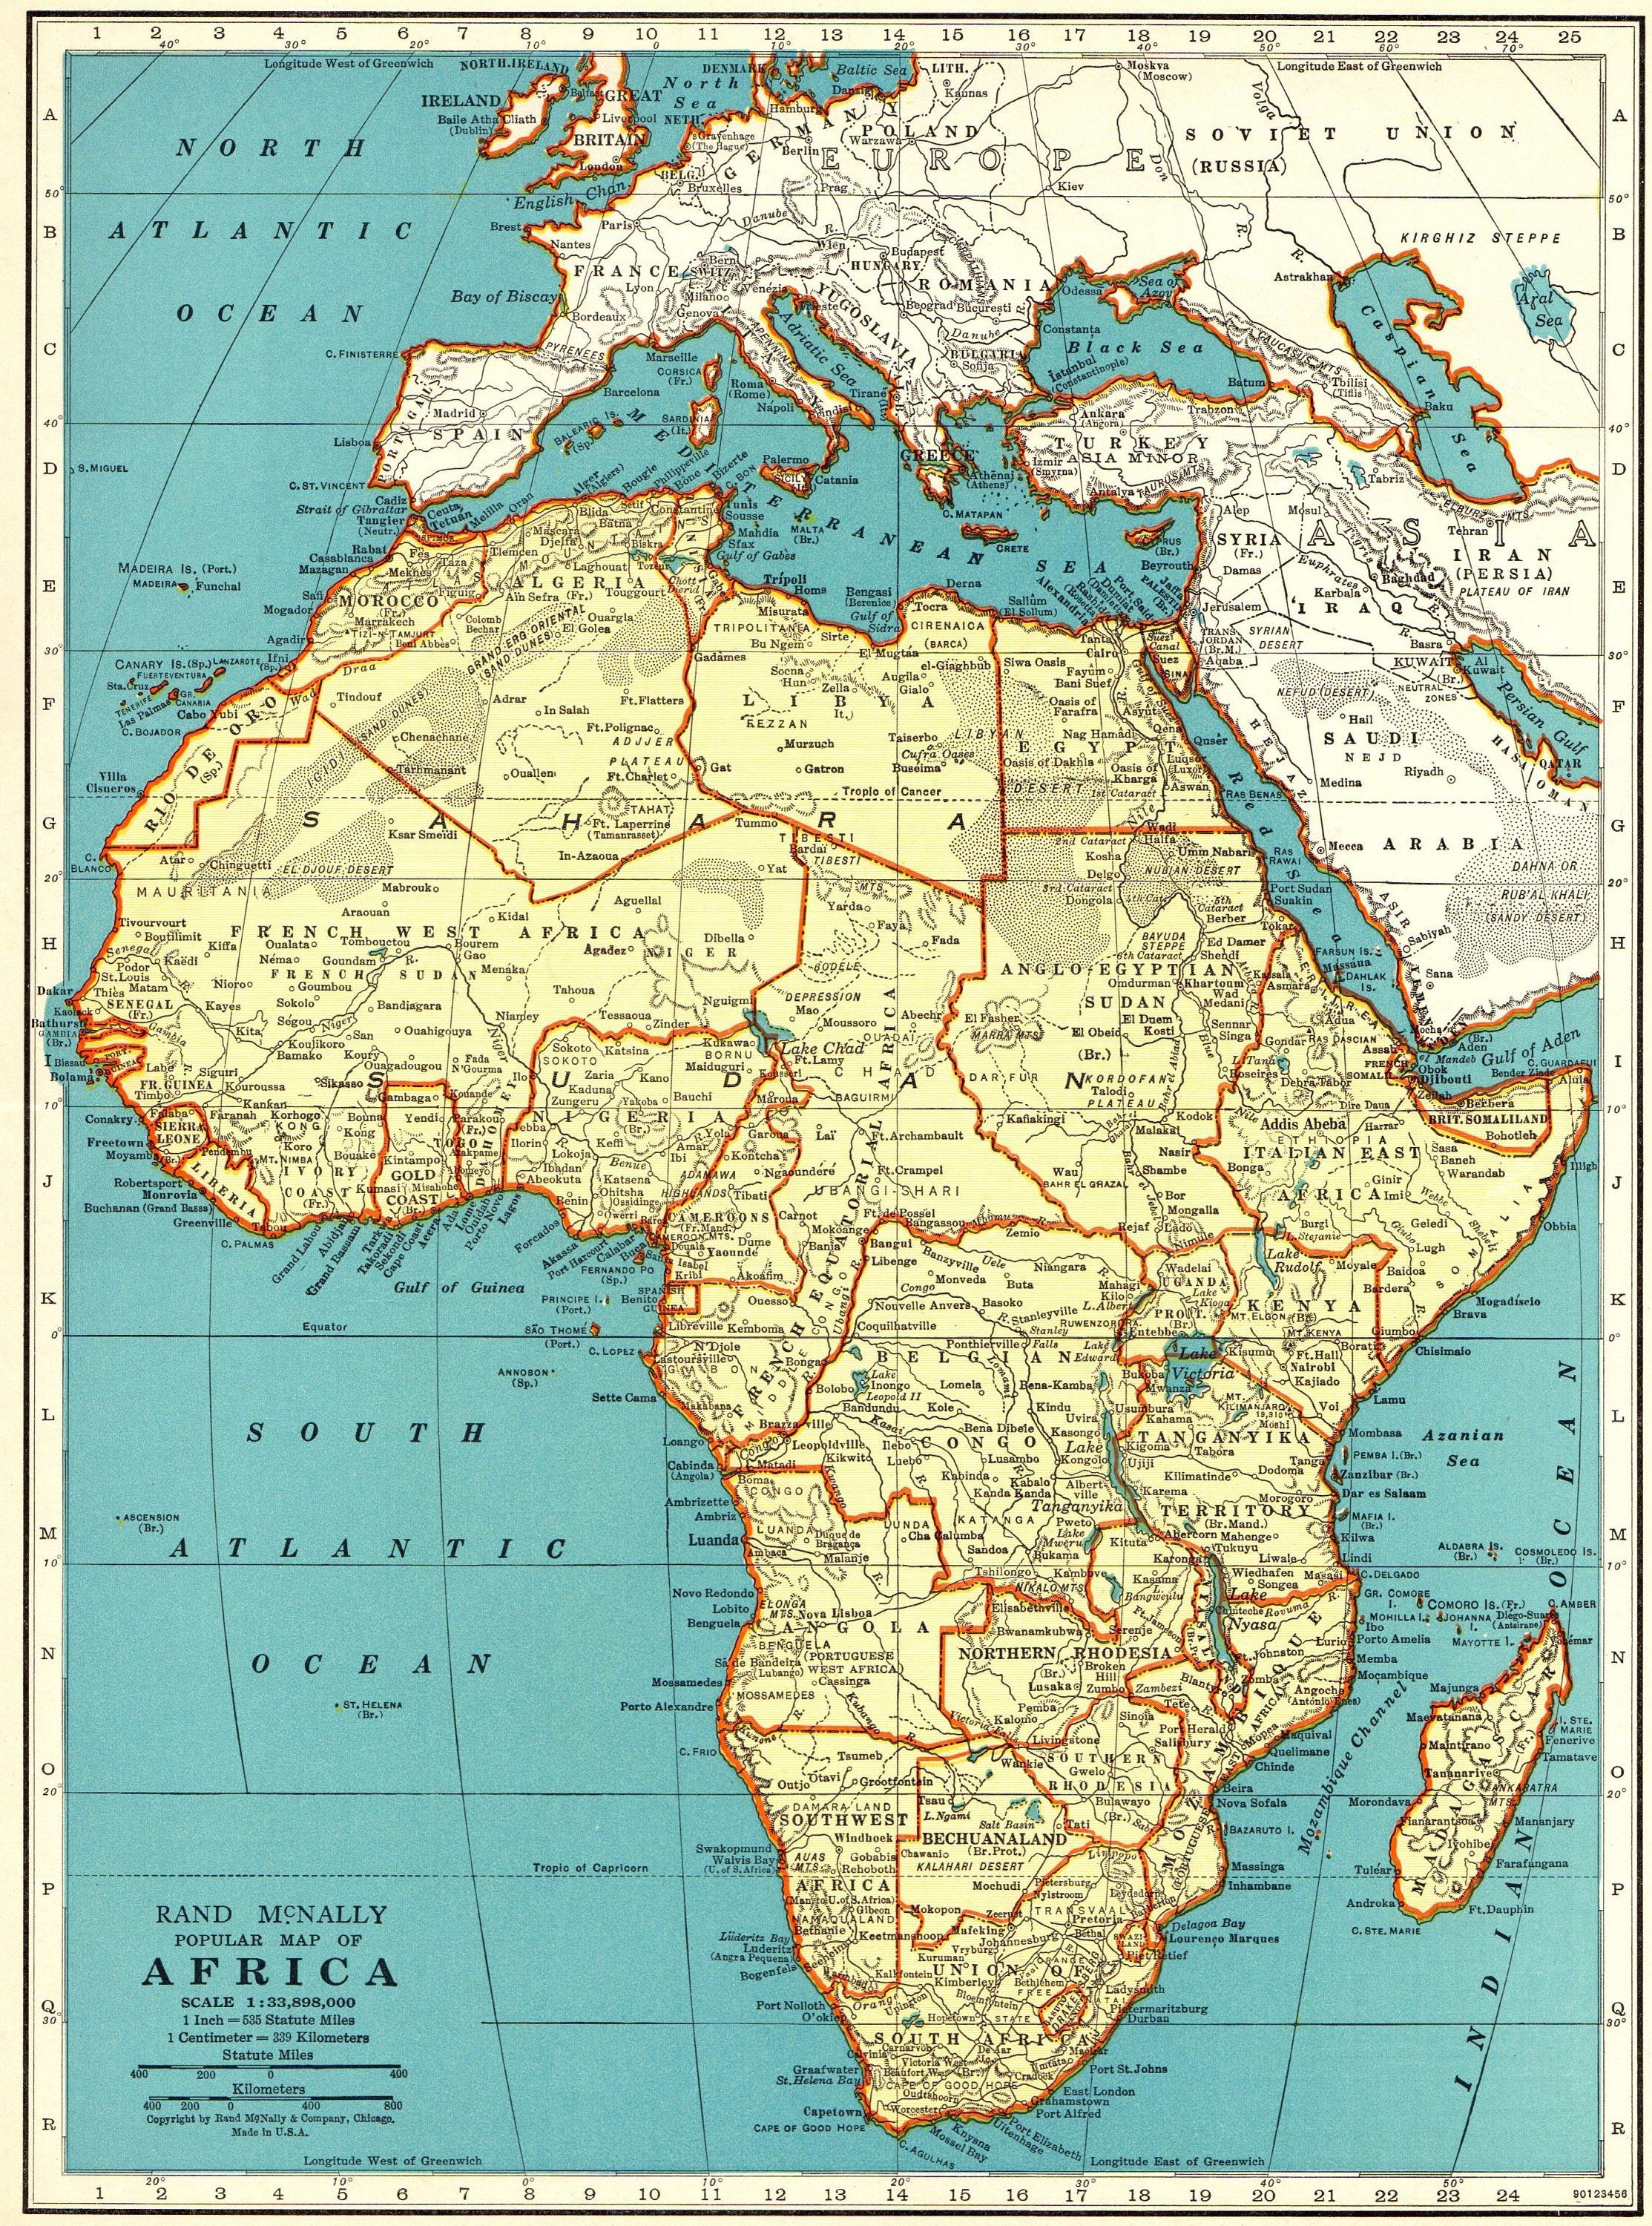 Map Of Africa 1940.1940 Antique Map Of Africa Vintage Africa Map Gallery Wall